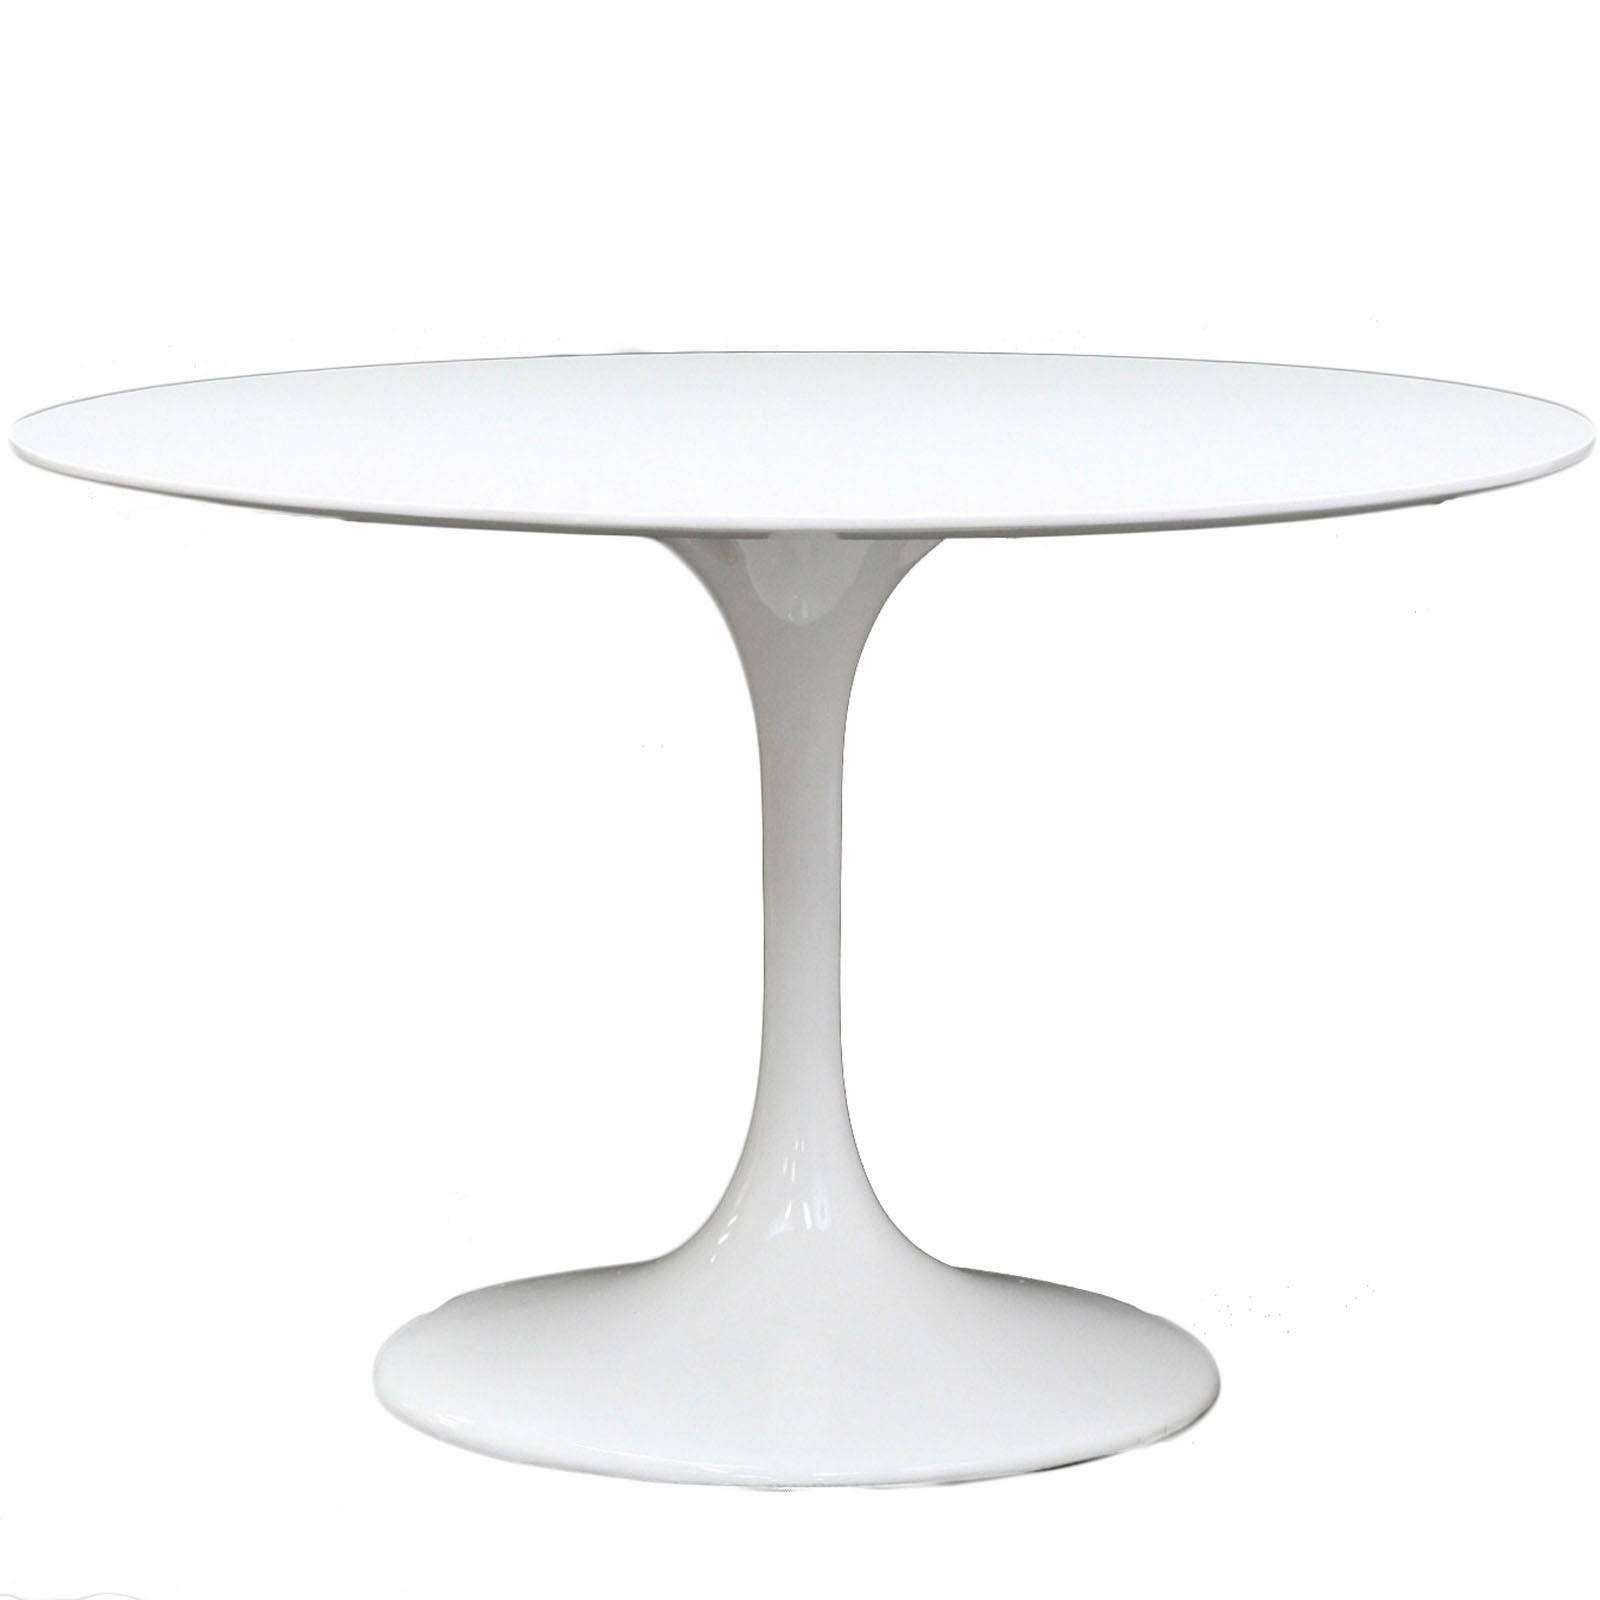 eero saarinen style tulip table fiberglass 40. Black Bedroom Furniture Sets. Home Design Ideas